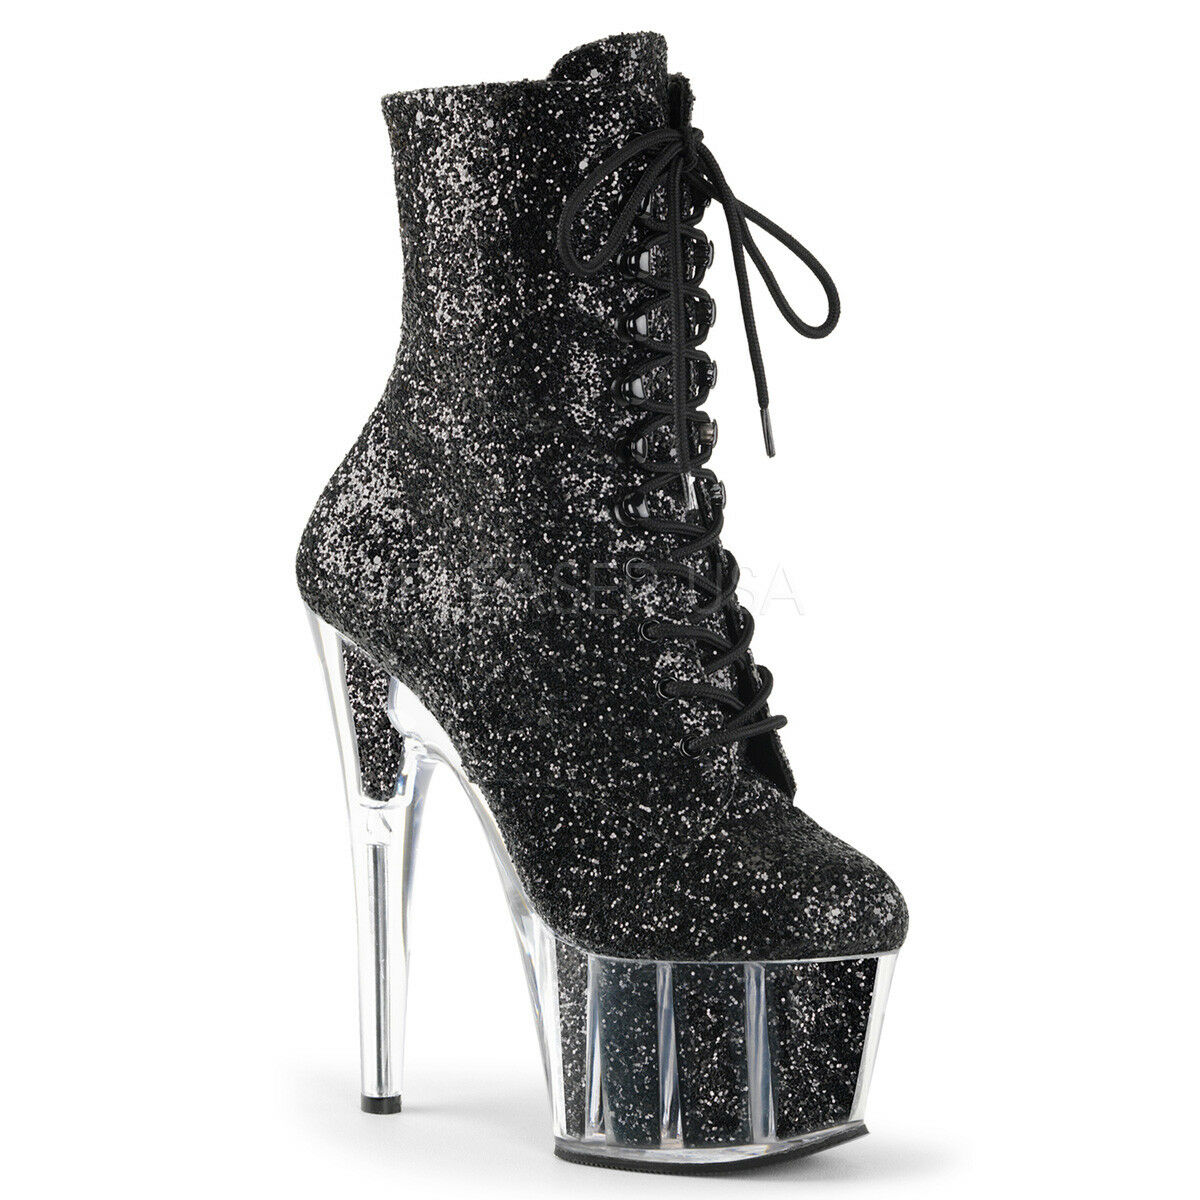 Pleaser ADORE-1020G Women's Sexy Black Glitter Heel Platform Lace-Up Ankle Boots